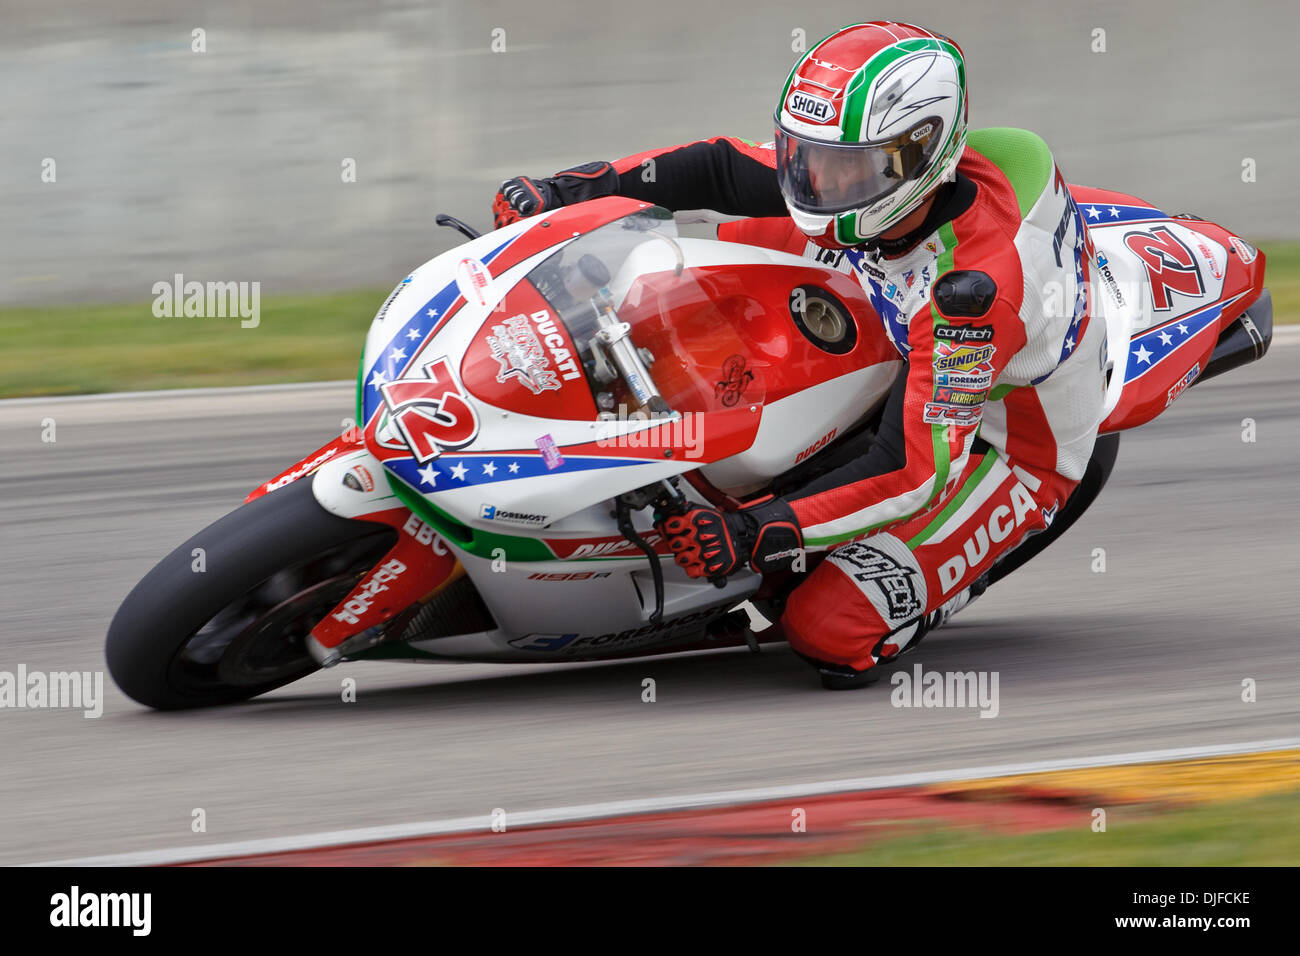 Larry Pegram 72 On His Foremost Insurance Ducati 1098r During The